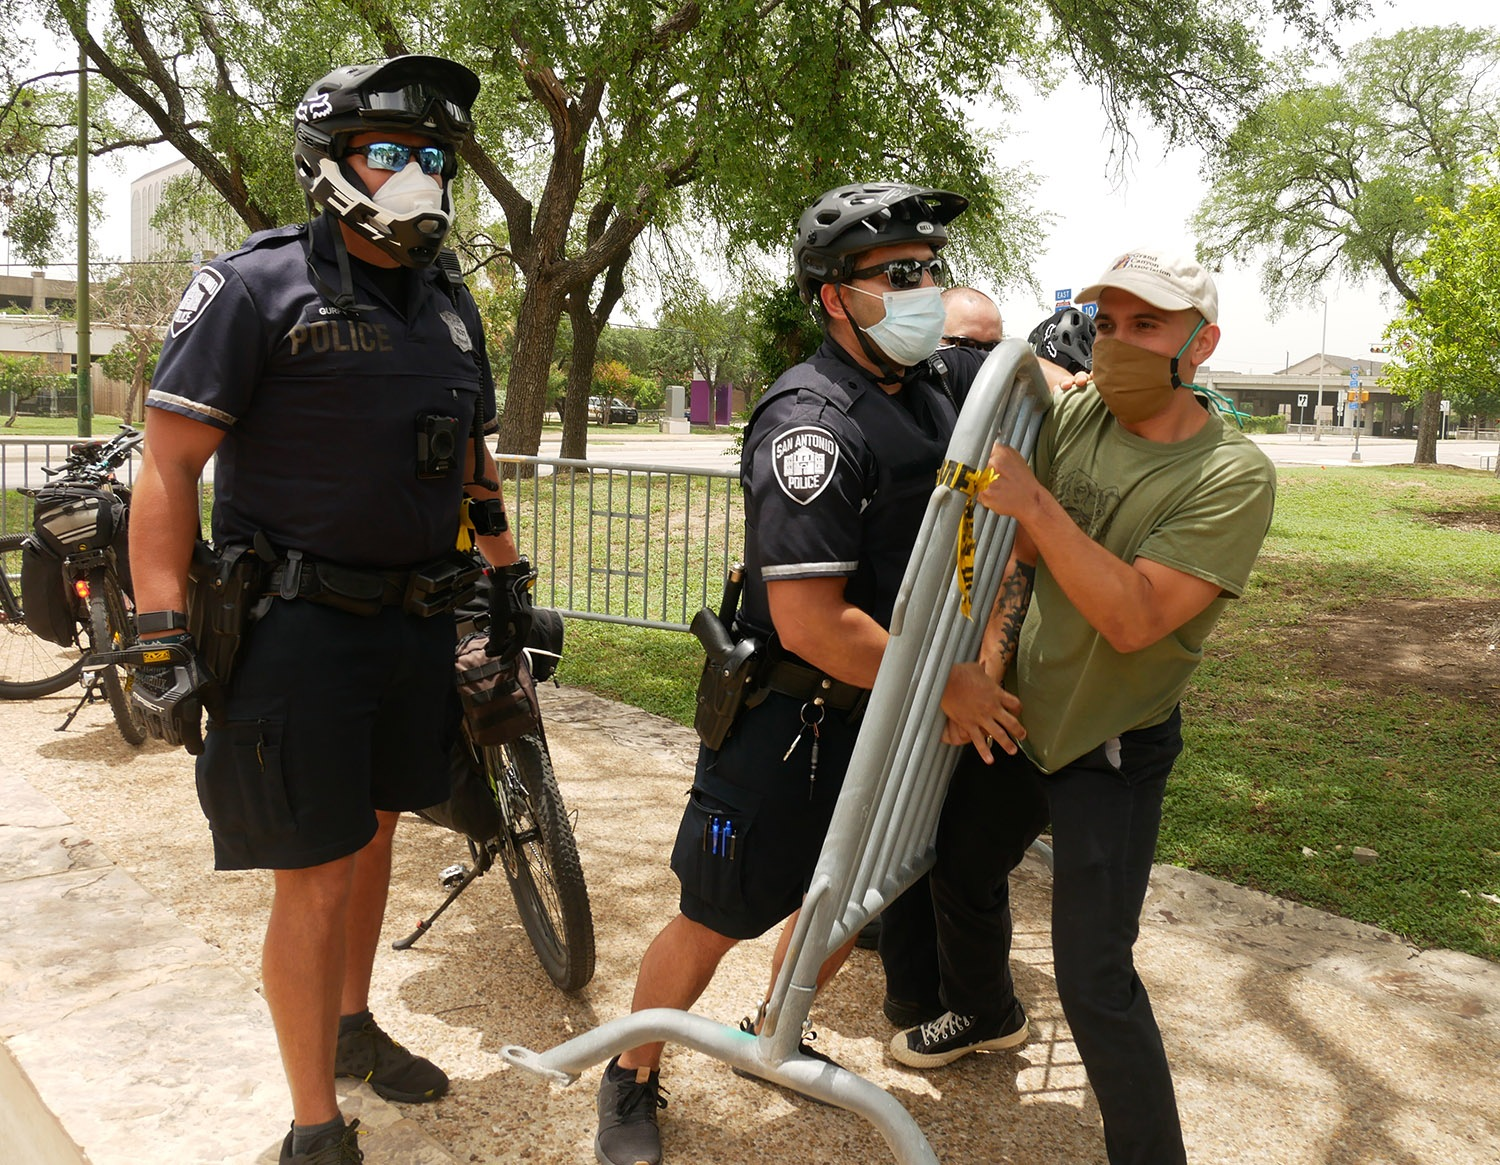 Jovanni Reyes and police officers clash during a protest for the removal of the Columbus statue Saturday, June 27, 2020, at Columbus Park, 200 Columbus St. Photo by Michelle Delrey | Heron contributor